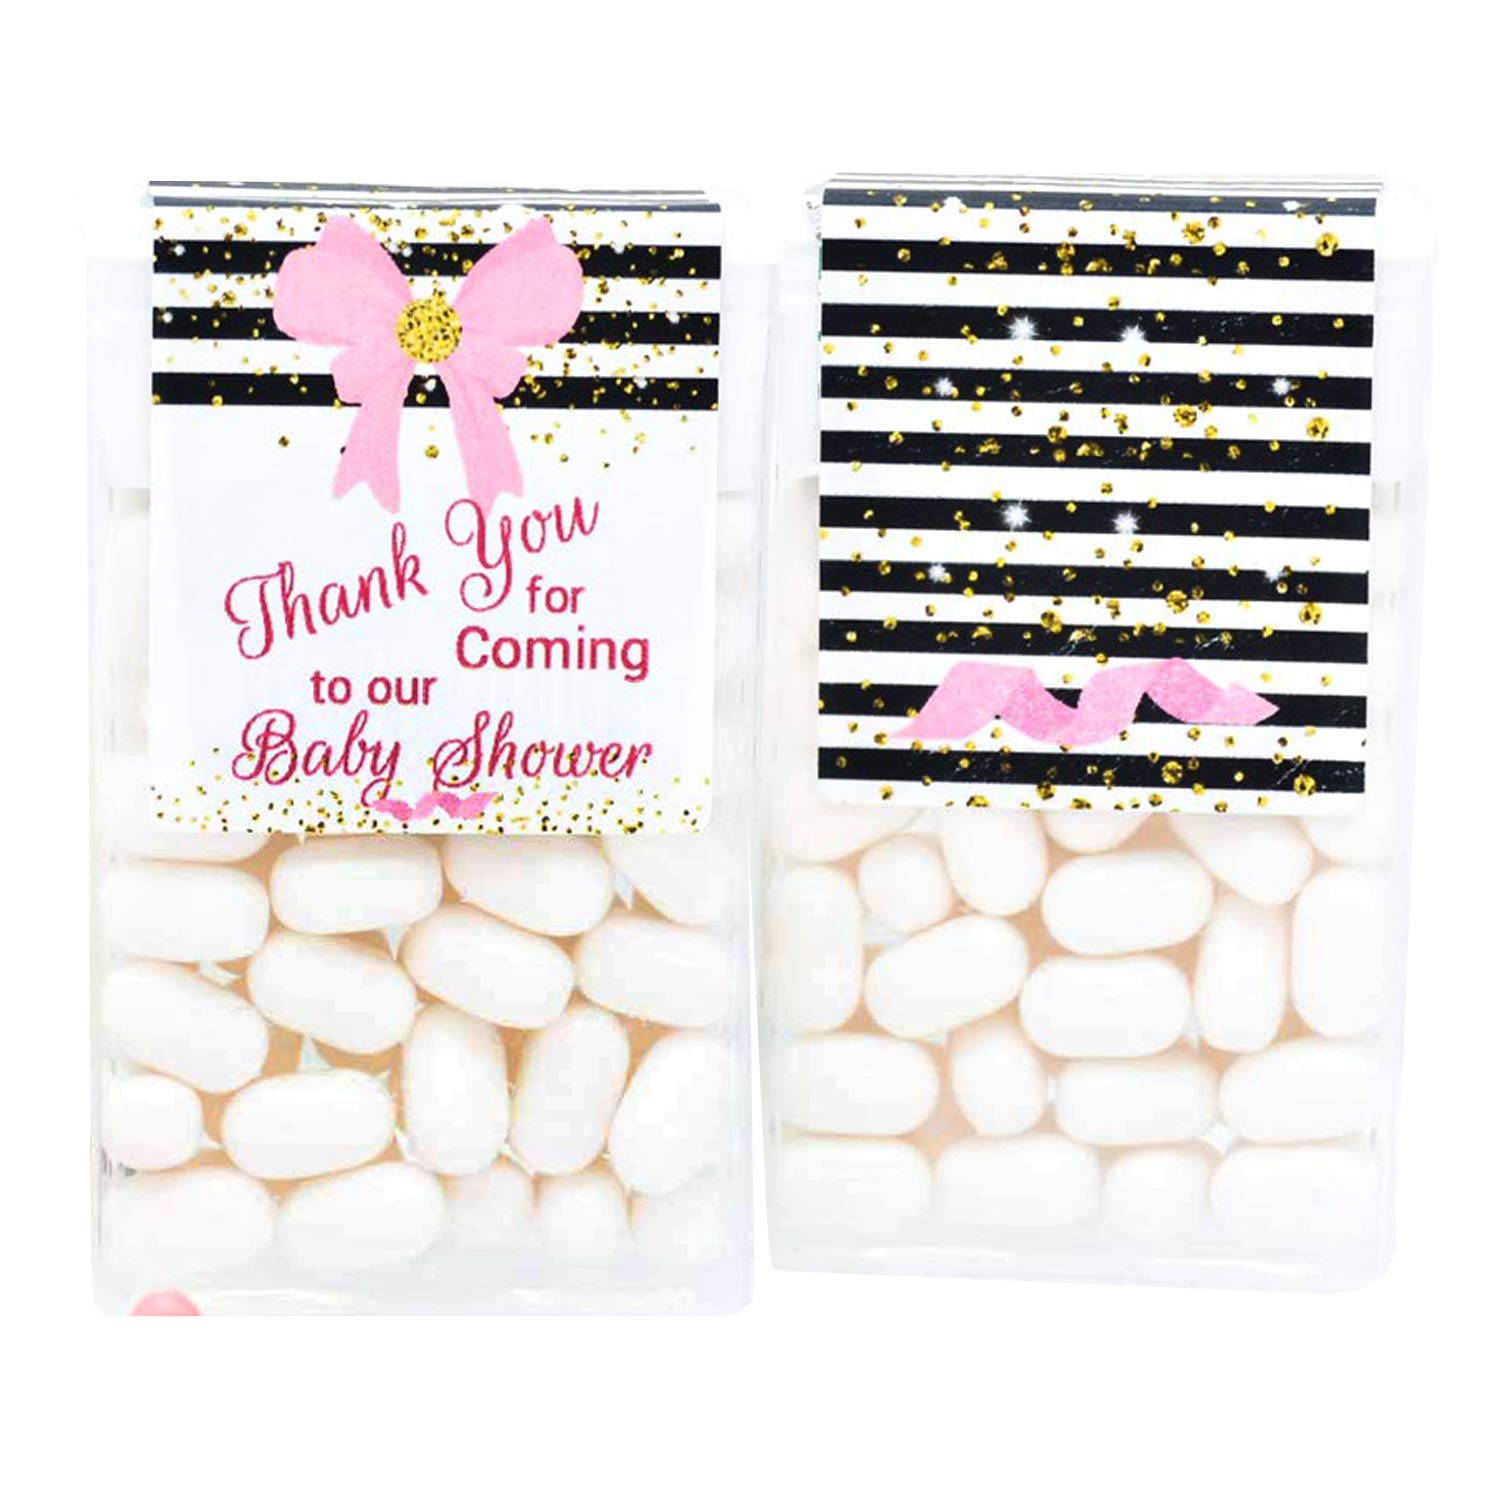 24 Girl Tulsa Mall Baby Shower Bombing new work Tic Labels Tac Tac® Stic